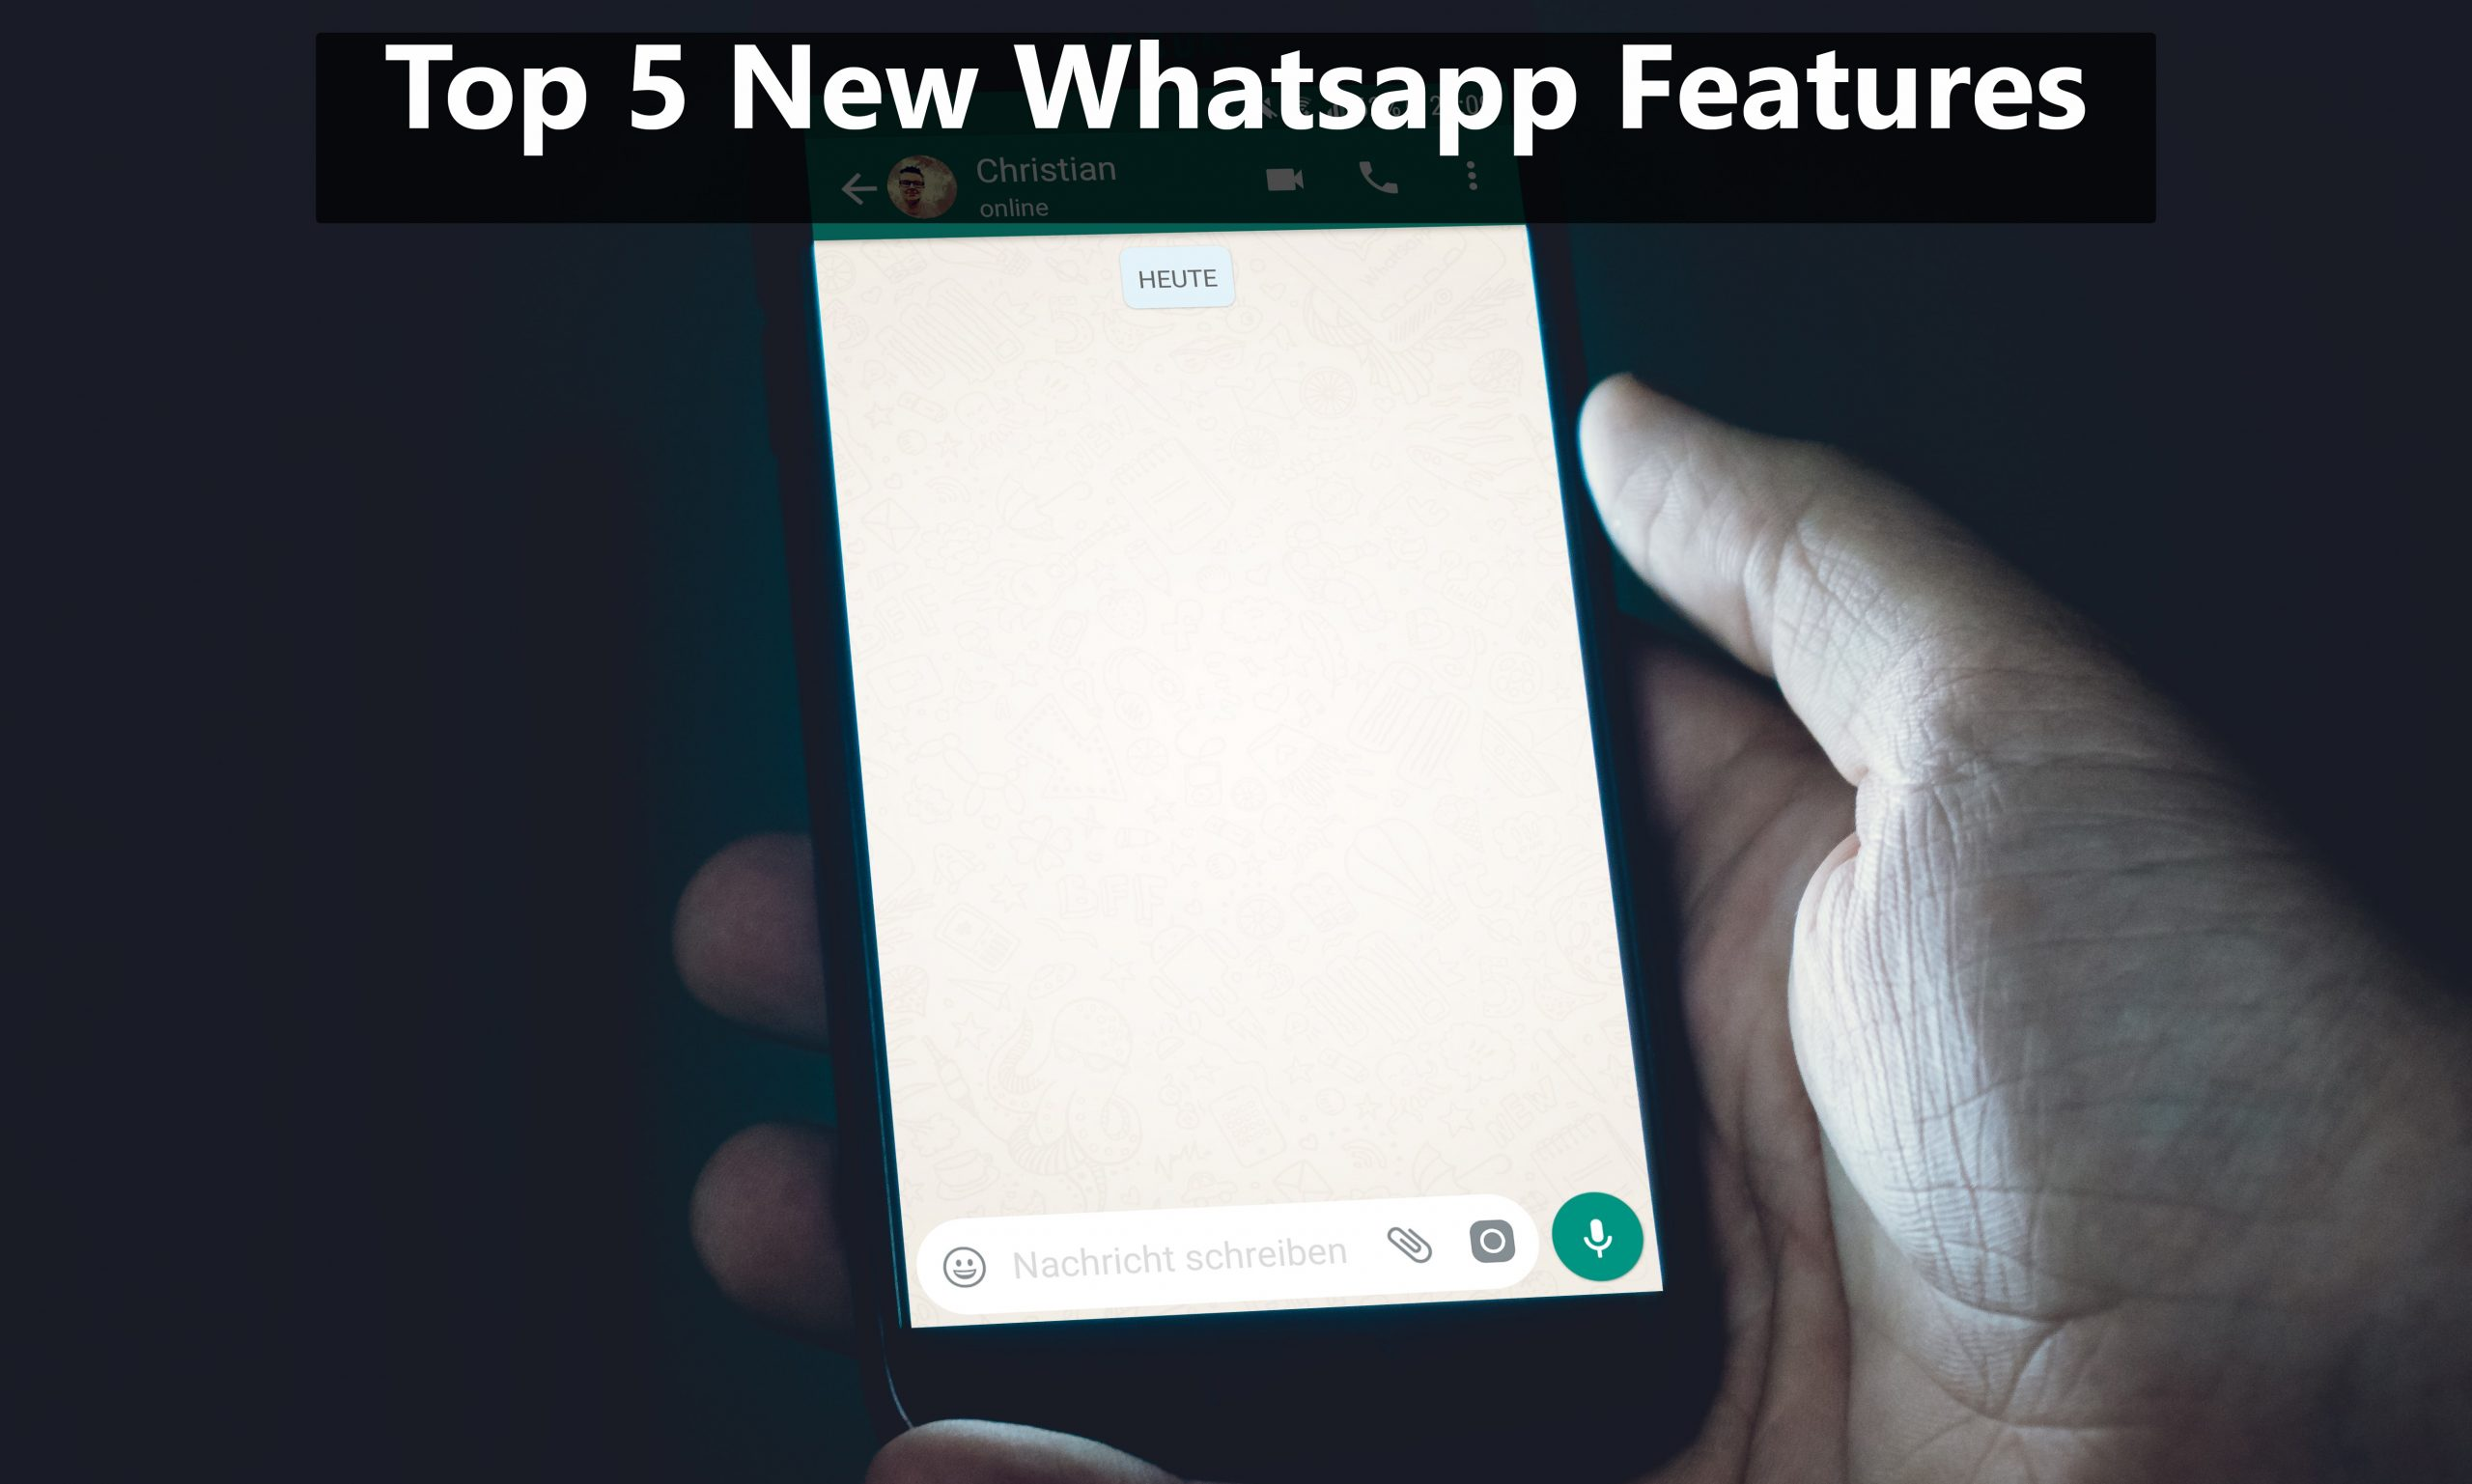 Top 5 Cool new WhatsApp features